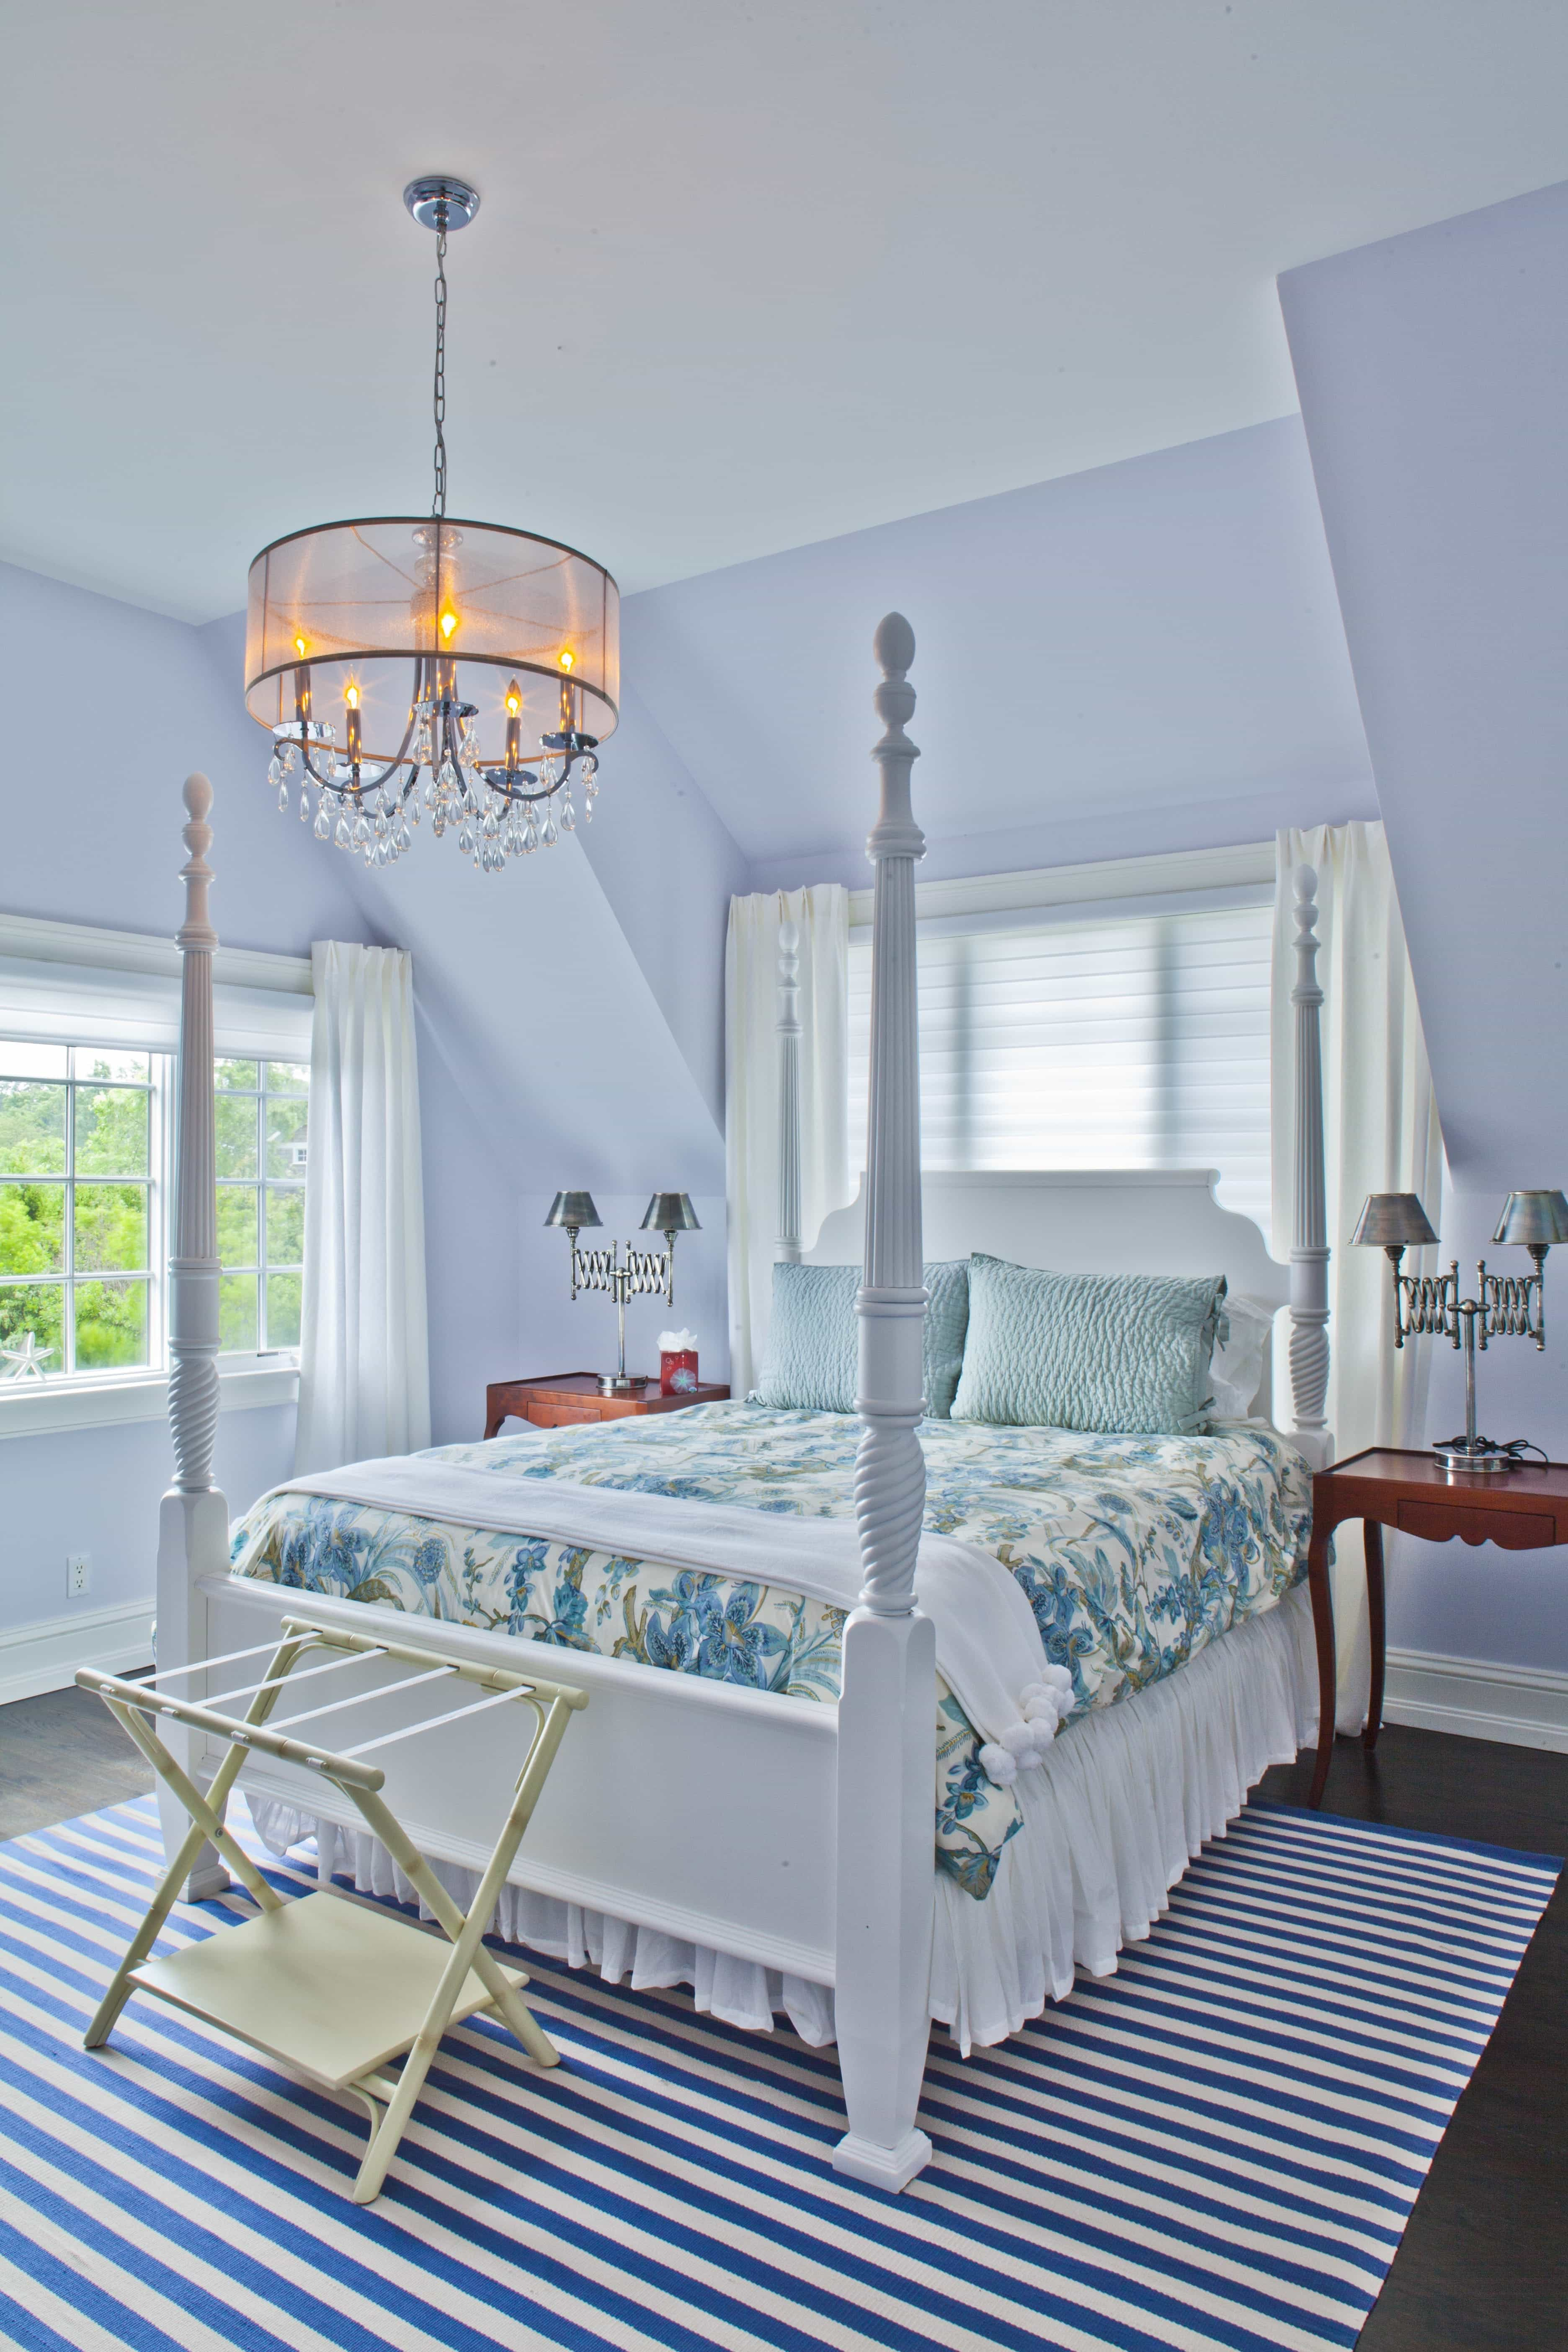 Pastel Bedroom Decor Boasts Fun Patterns And Traditional Touches (Image 21 of 28)